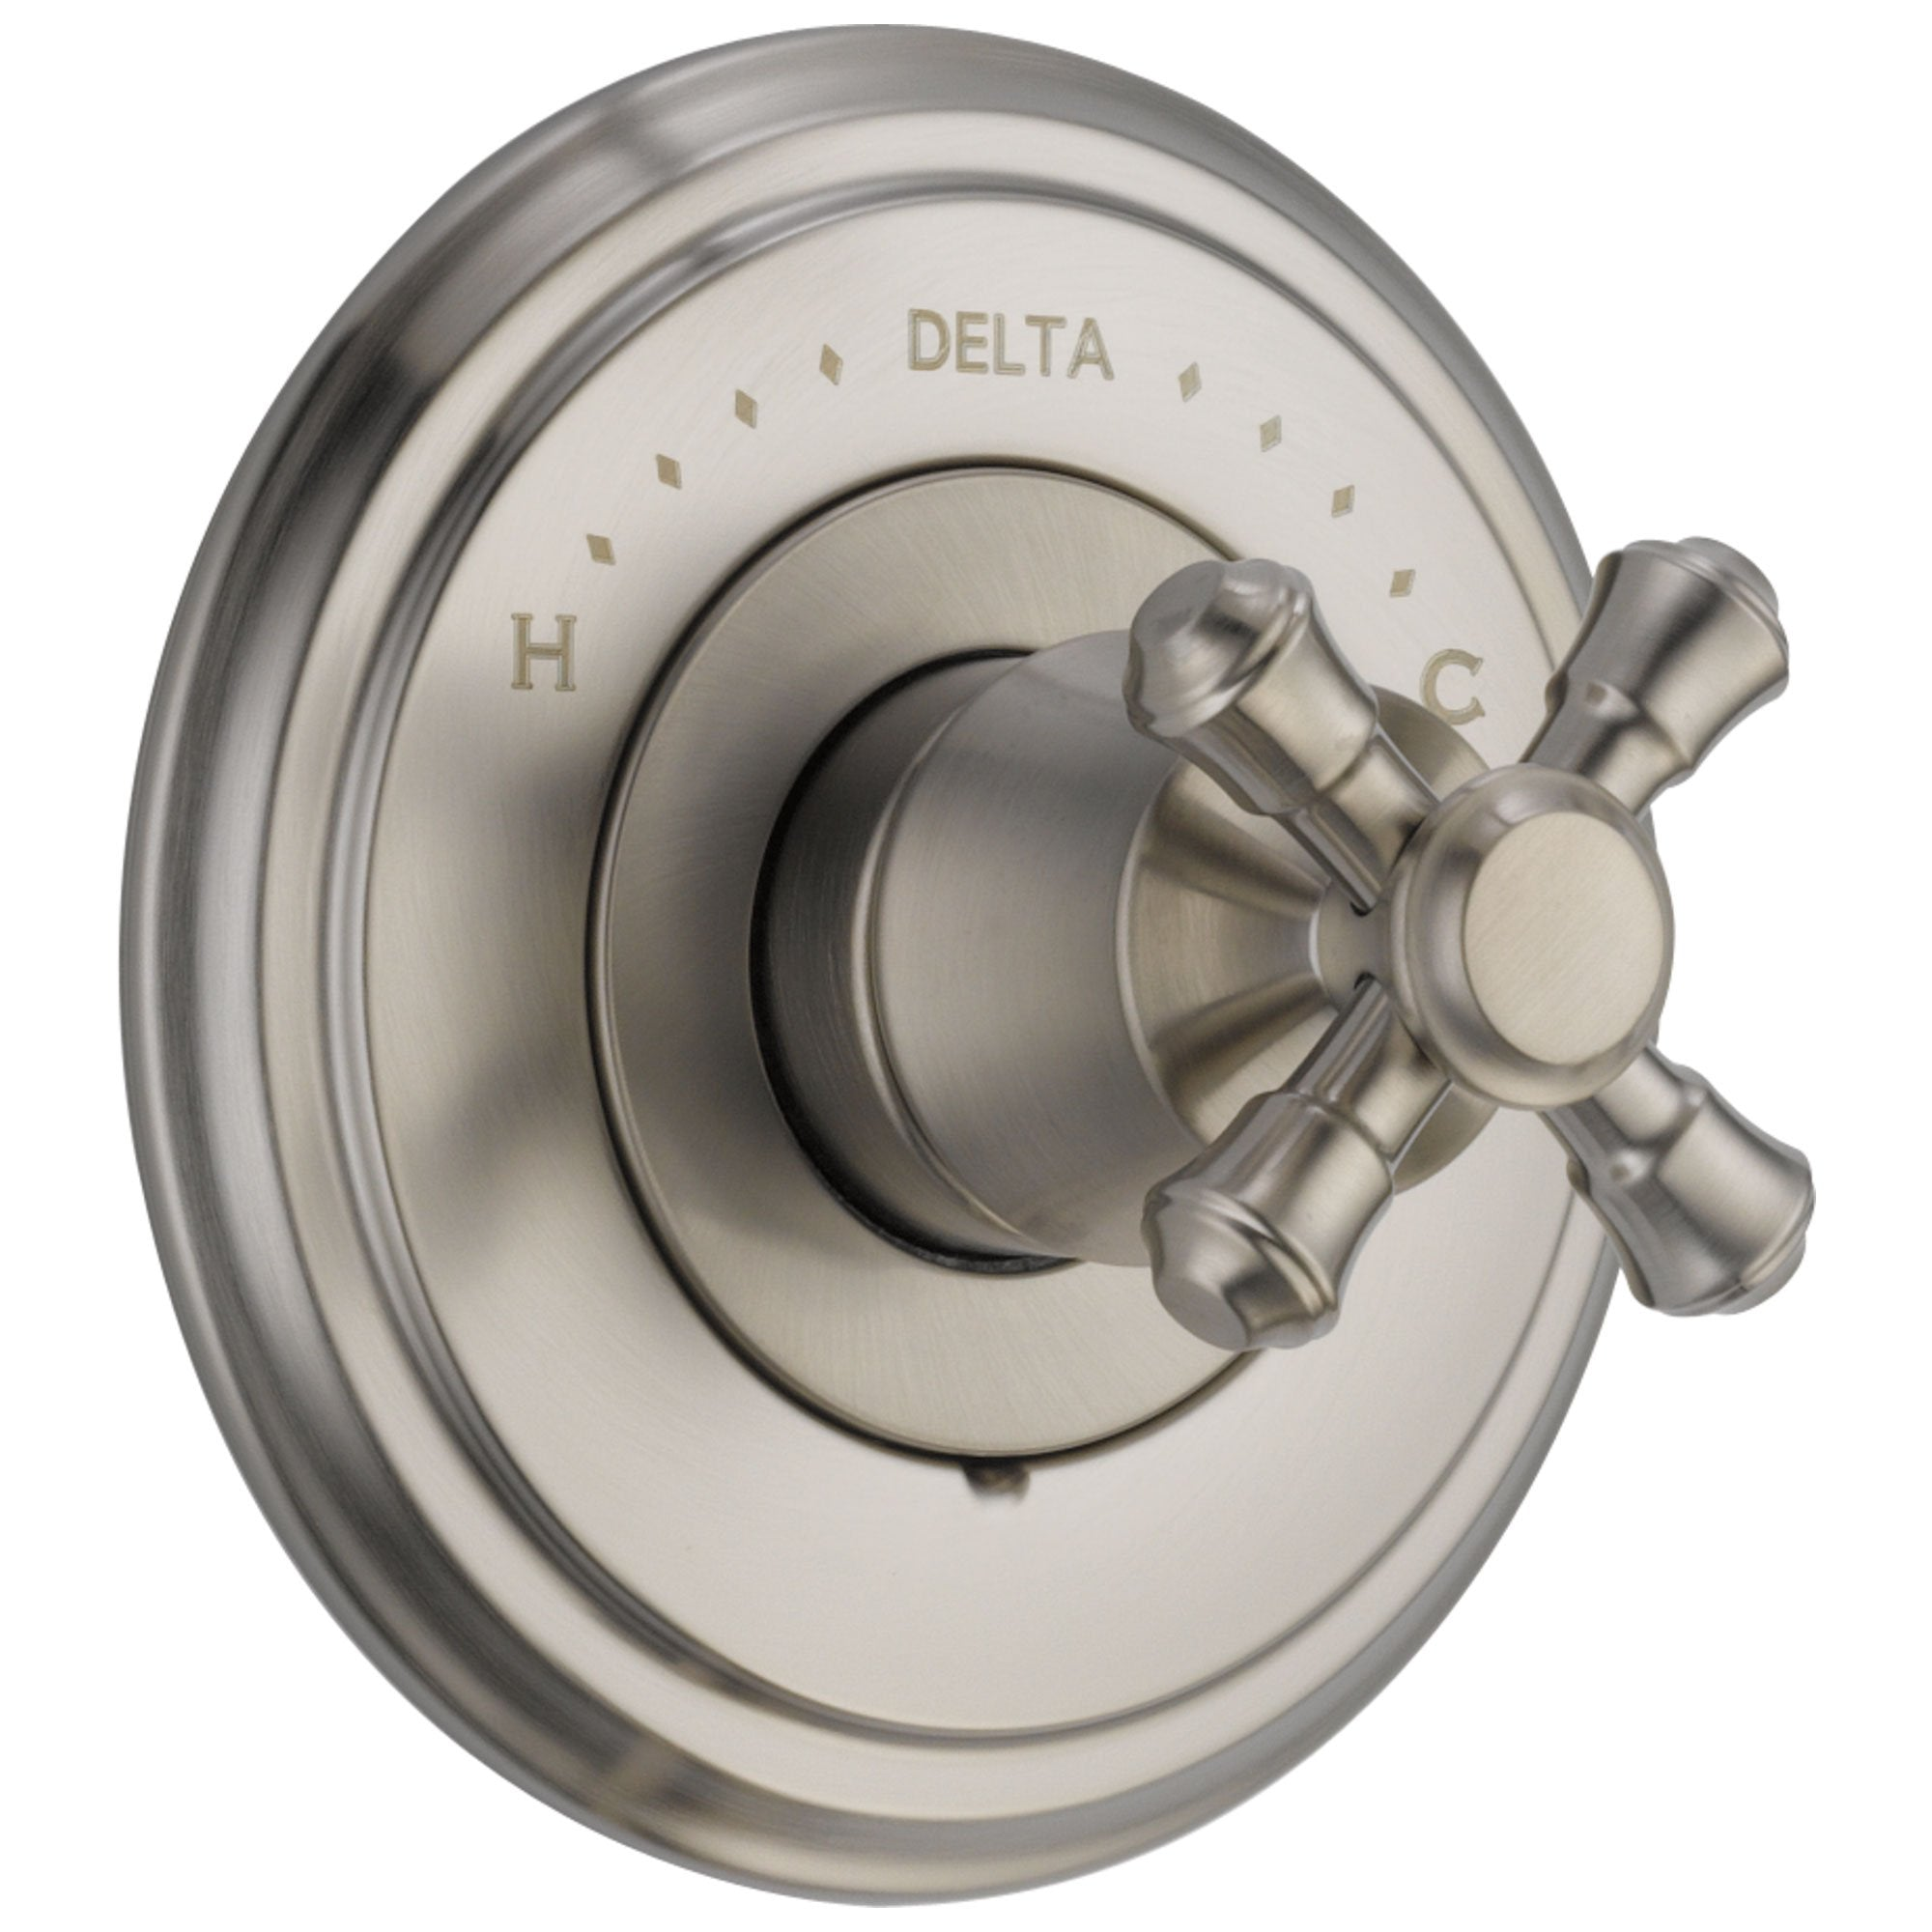 Delta Cassidy Collection Stainless Steel Finish Monitor 14 Shower Faucet Control COMPLETE ITEM with Single Cross Handle and Rough-in Valve without Stops D1586V